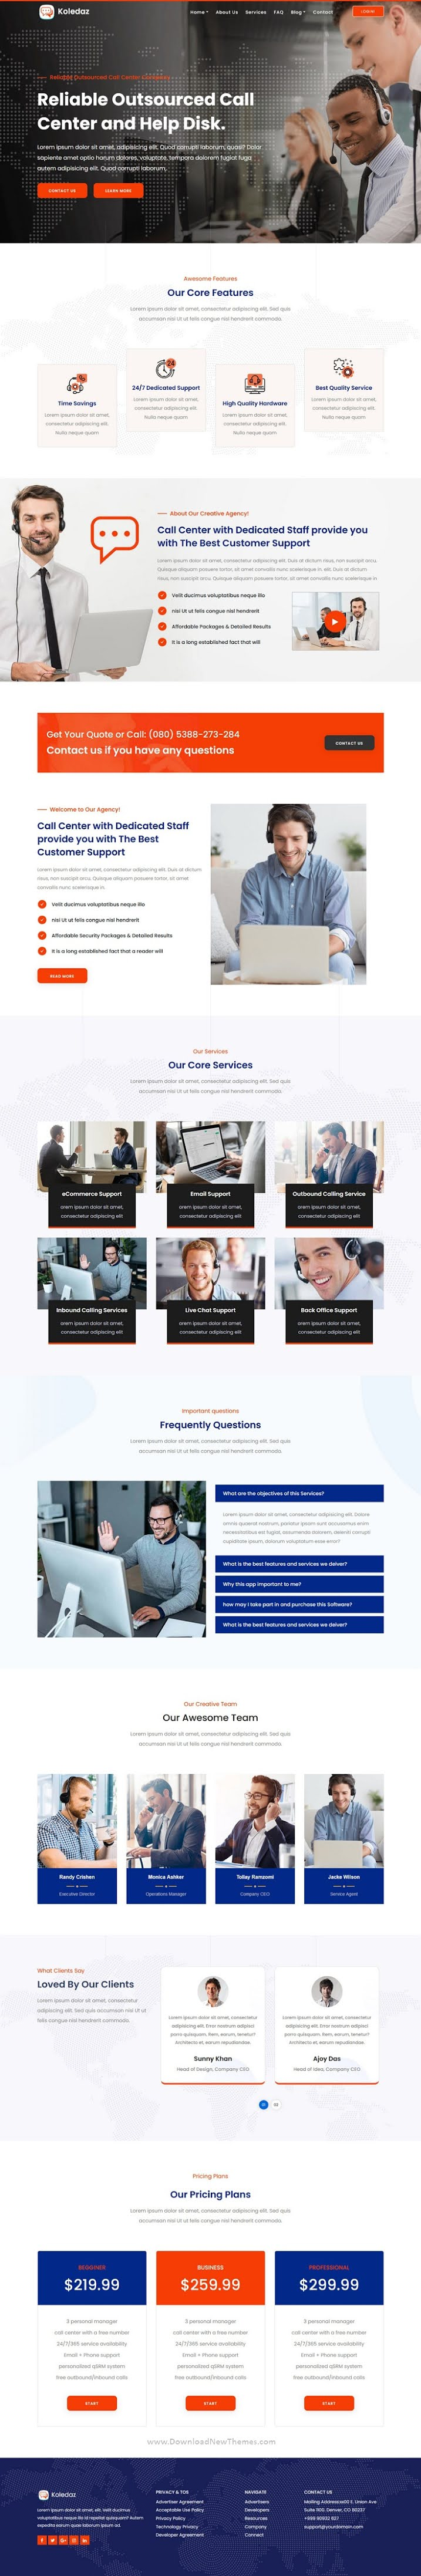 Call Center Services and Telemarketing Company Template